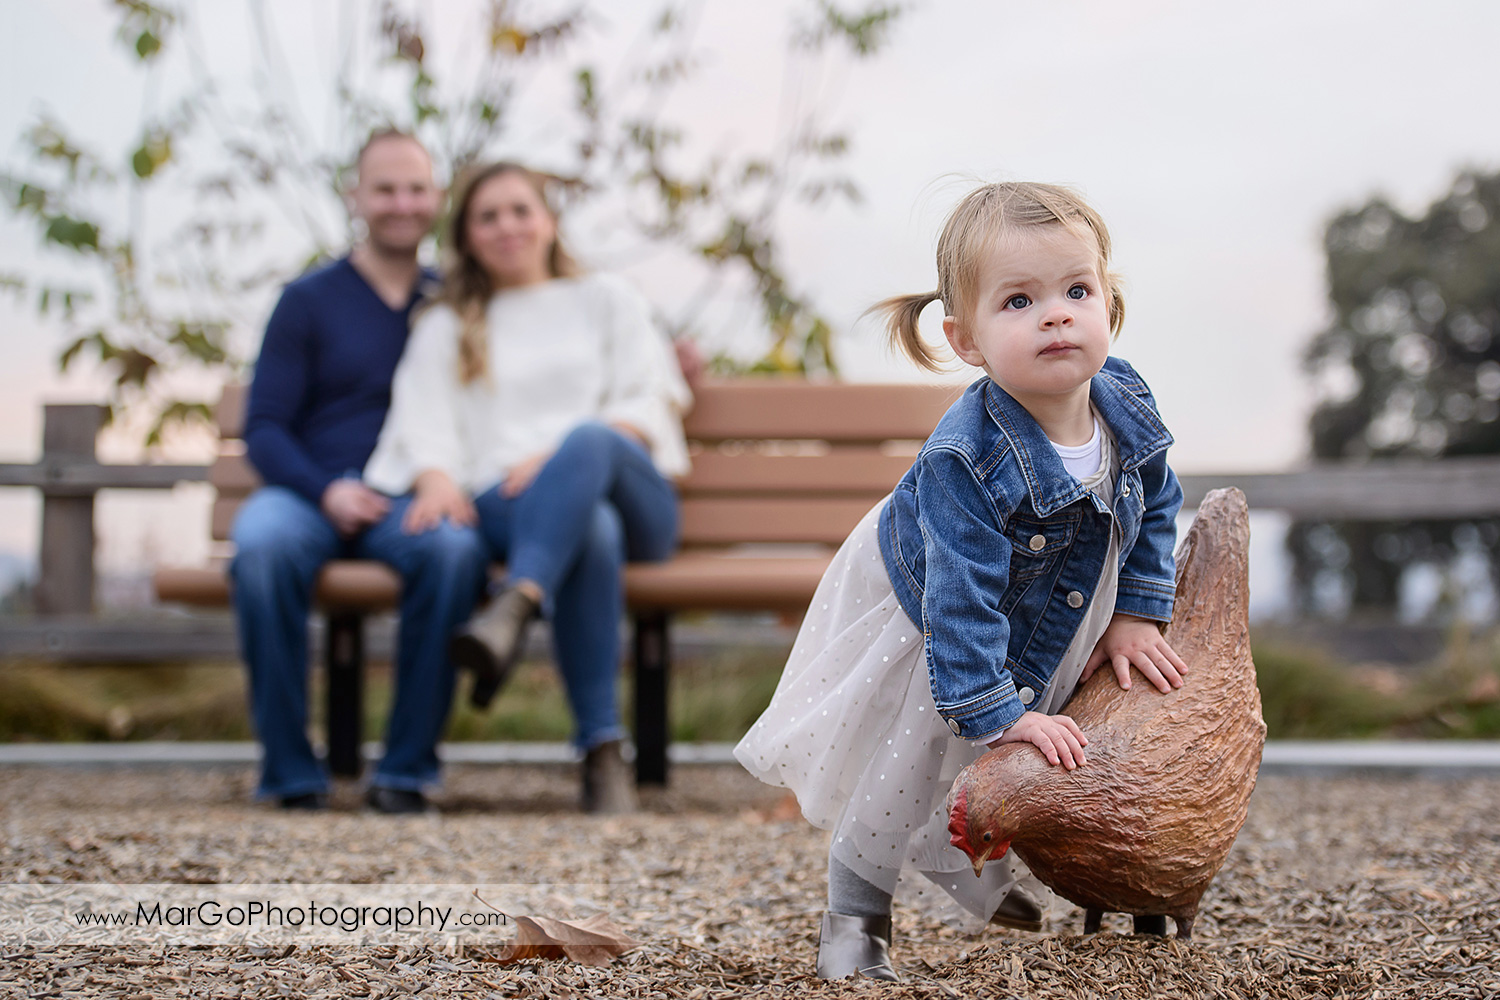 little girl in white dress and jeans jacket standing next to brown hen with father wearing navy blue sweater to mother in white blouse sitting on the bench in background during family session at San Jose Martial Cottle Park